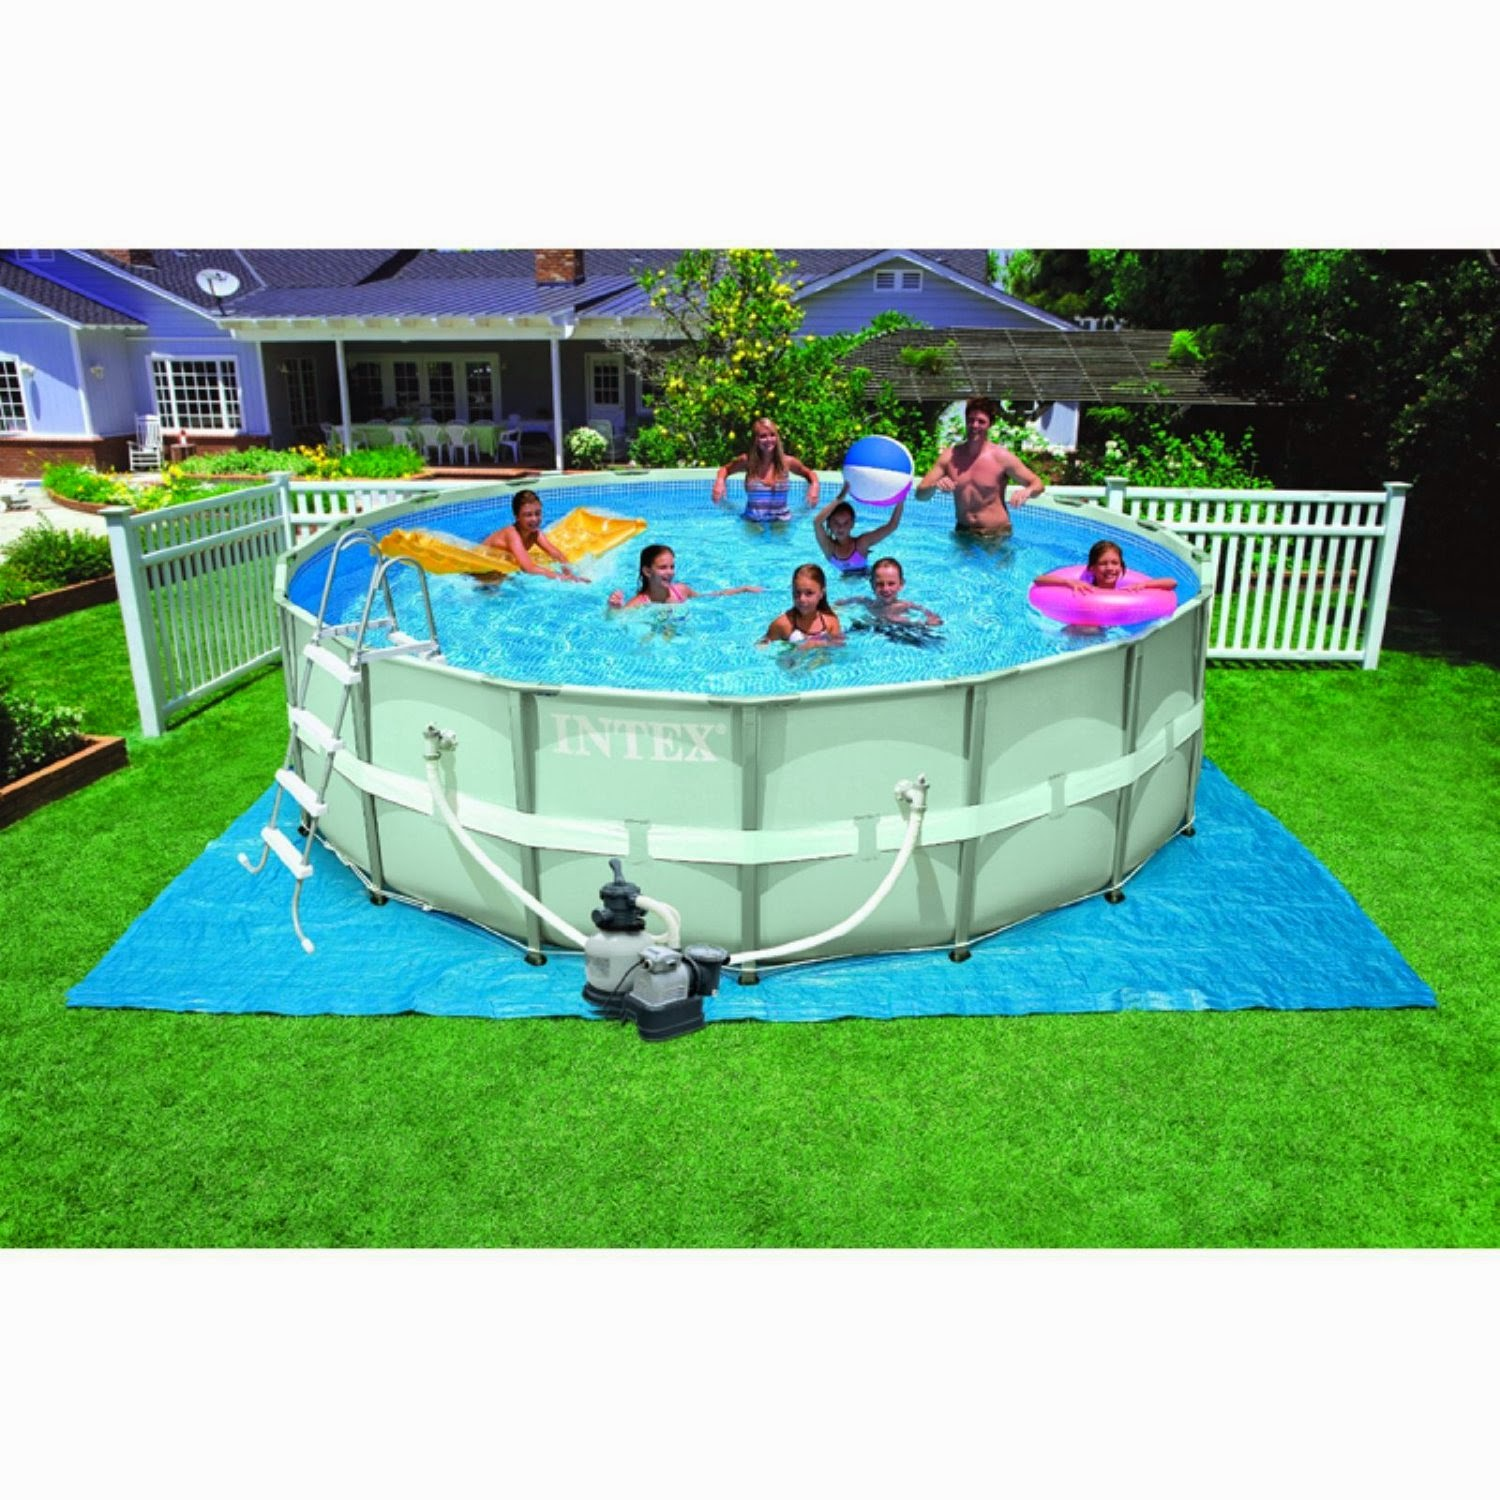 best seller intex pools reviews intex ultra frame pools. Black Bedroom Furniture Sets. Home Design Ideas